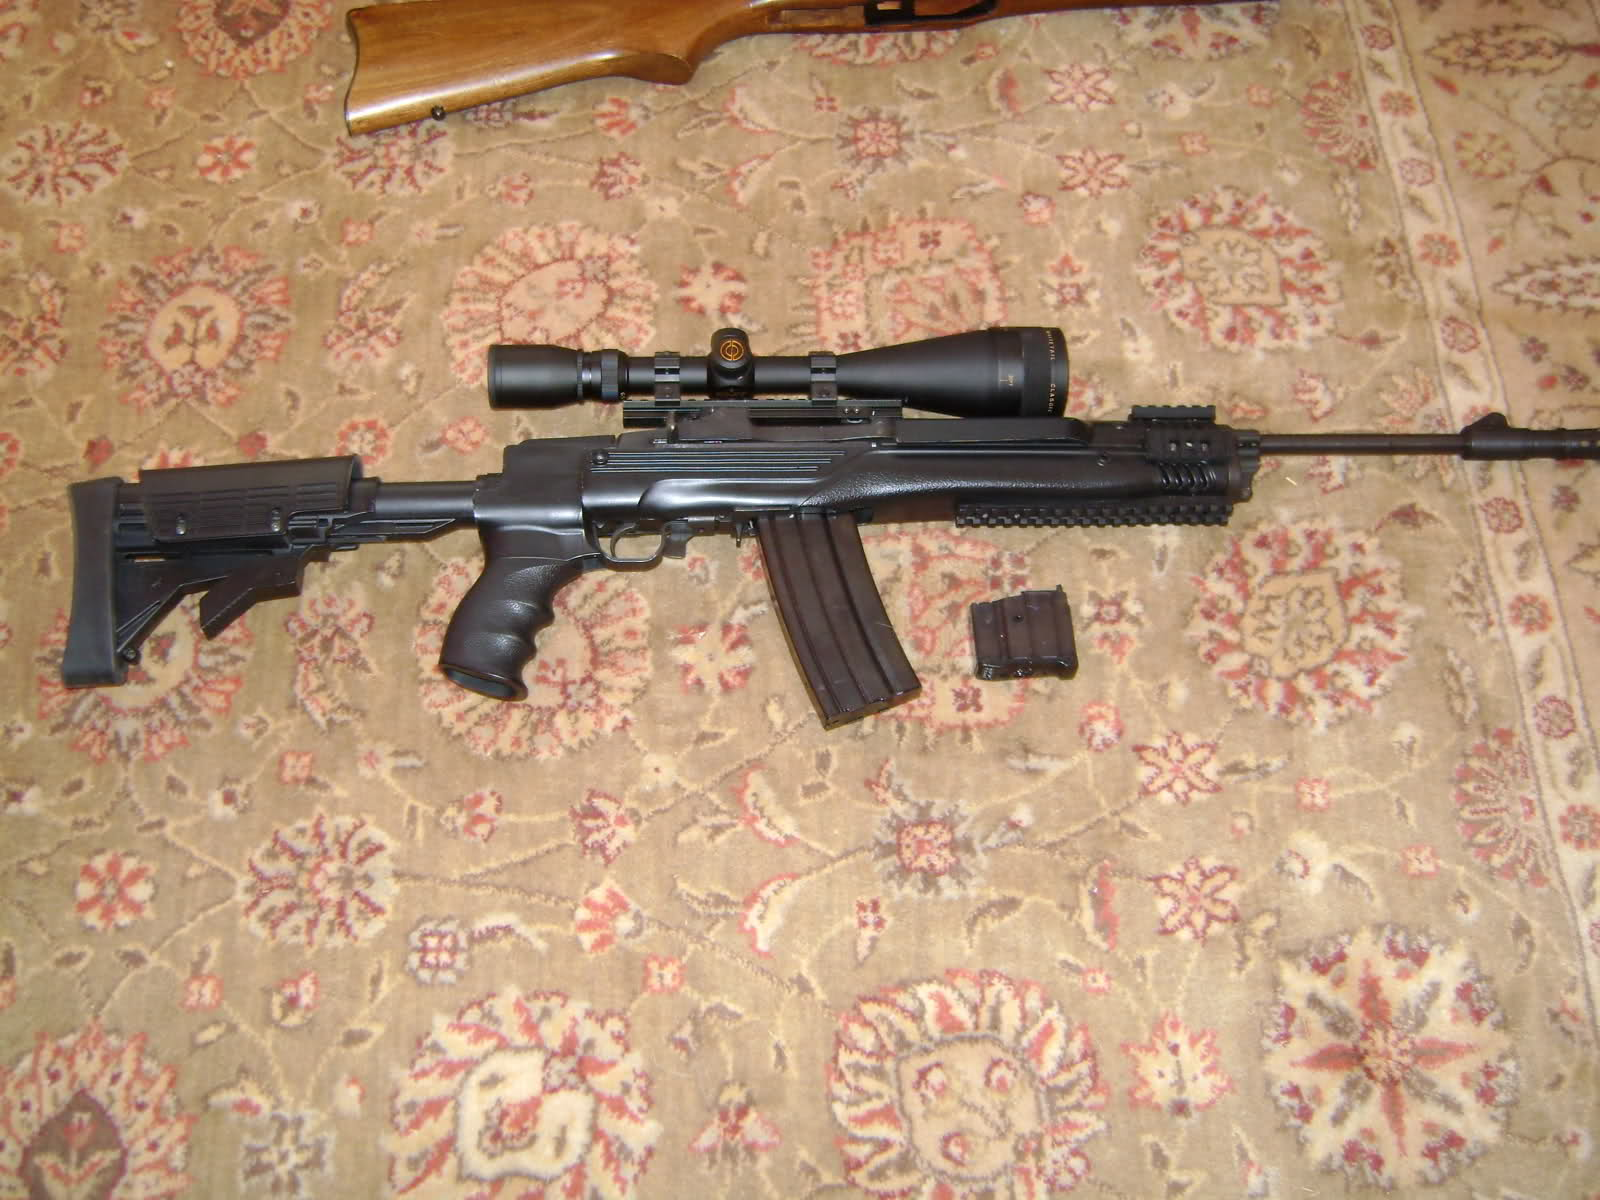 traded ruger mini 14 with ati tactical package scope mags etc